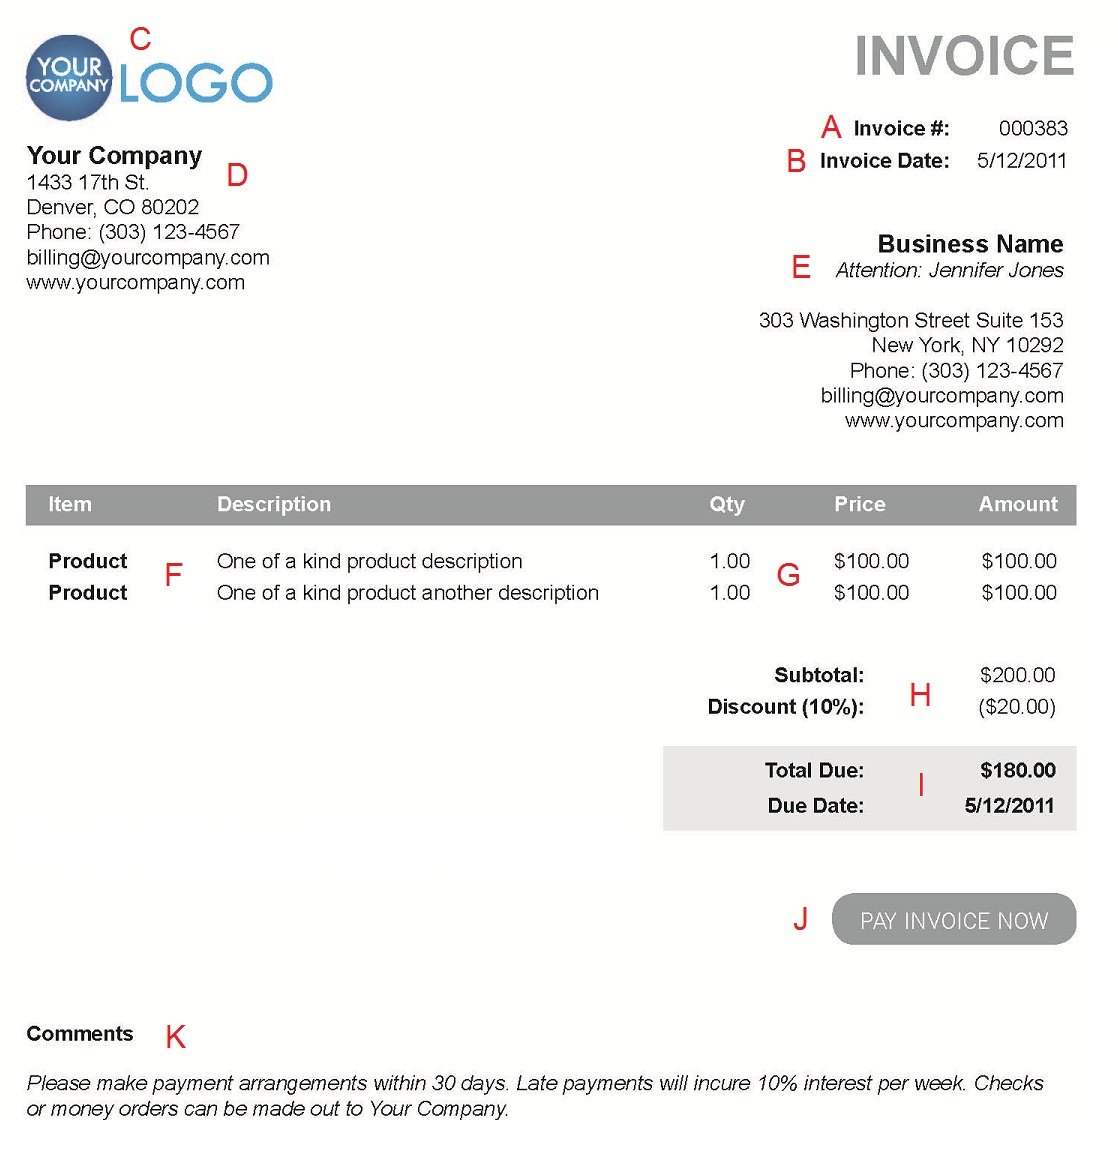 Coolmathgamesus  Nice The  Different Sections Of An Electronic Payment Invoice With Engaging A  With Nice Mac Mail Receipt Also Toshiba Receipt Printer In Addition Sold As Seen Receipt Template And Payment Receipt Doc As Well As Purchase Receipt Sample Additionally Receipts And Payments Accounts From Paysimplecom With Coolmathgamesus  Engaging The  Different Sections Of An Electronic Payment Invoice With Nice A  And Nice Mac Mail Receipt Also Toshiba Receipt Printer In Addition Sold As Seen Receipt Template From Paysimplecom